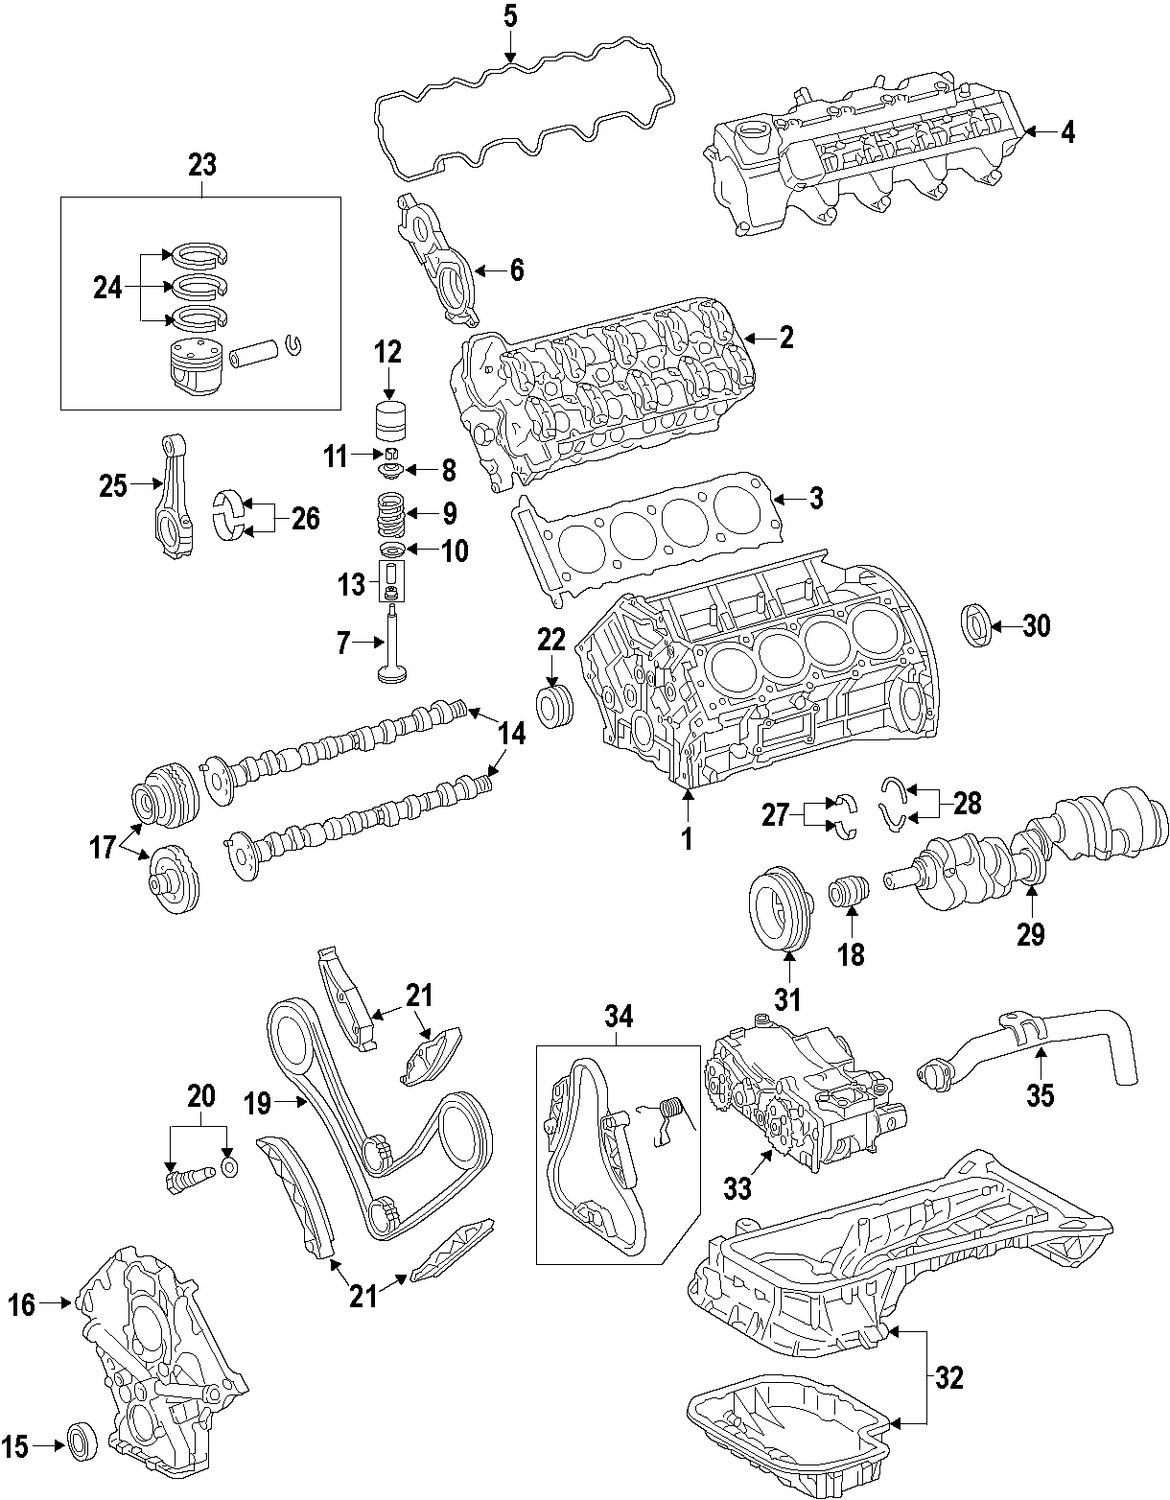 sel engine parts diagram  sel  free engine image for user